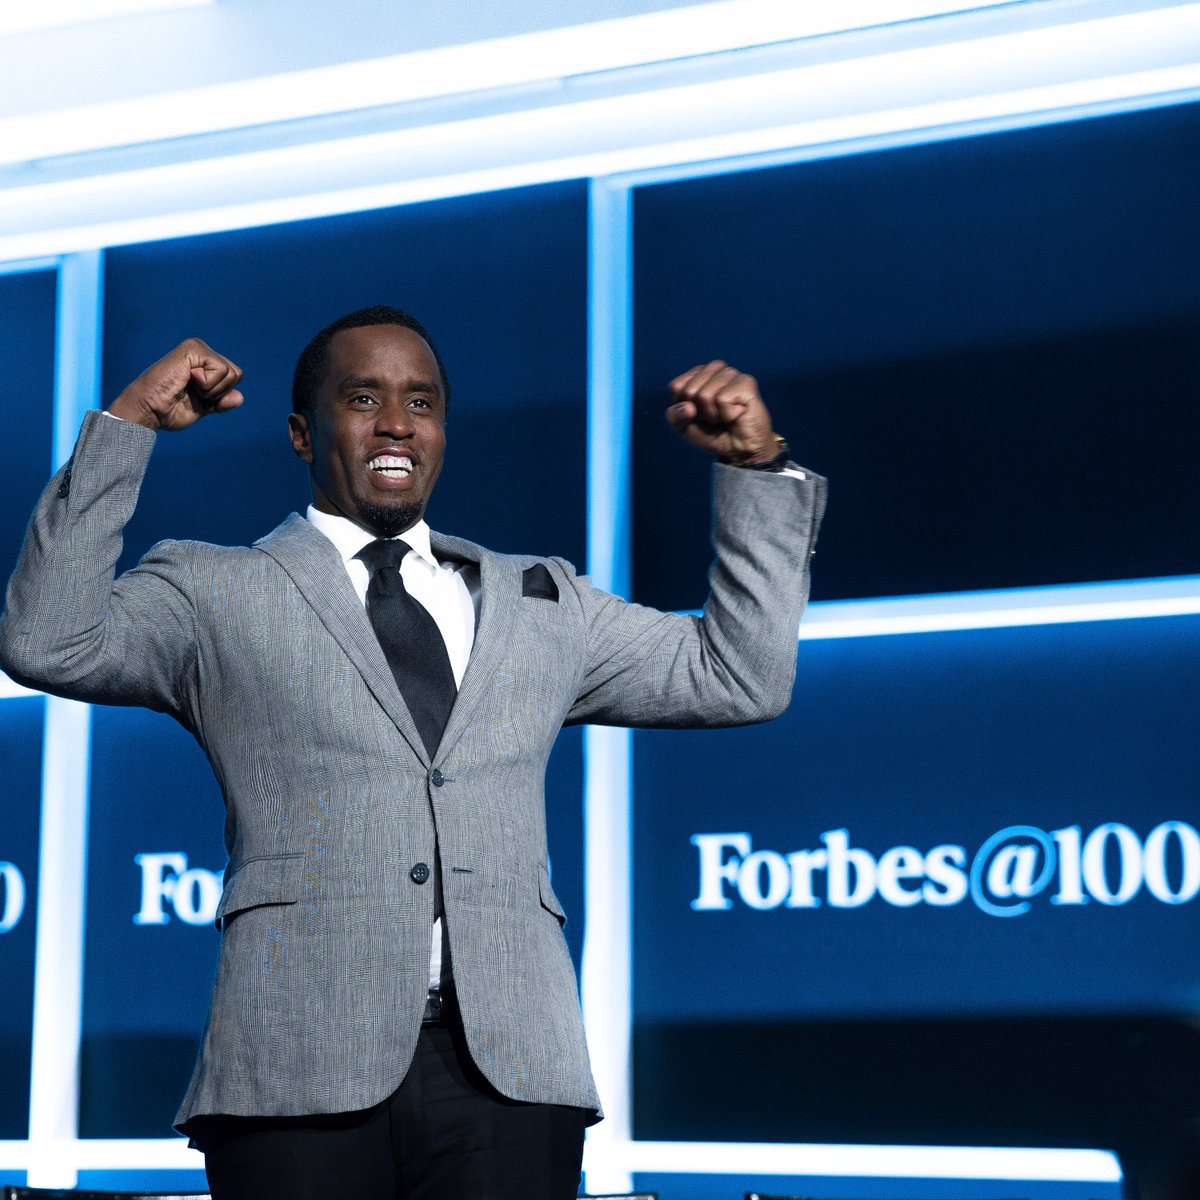 Last night was historic. I was the only African American on a stage of the brightest business minds of the world.